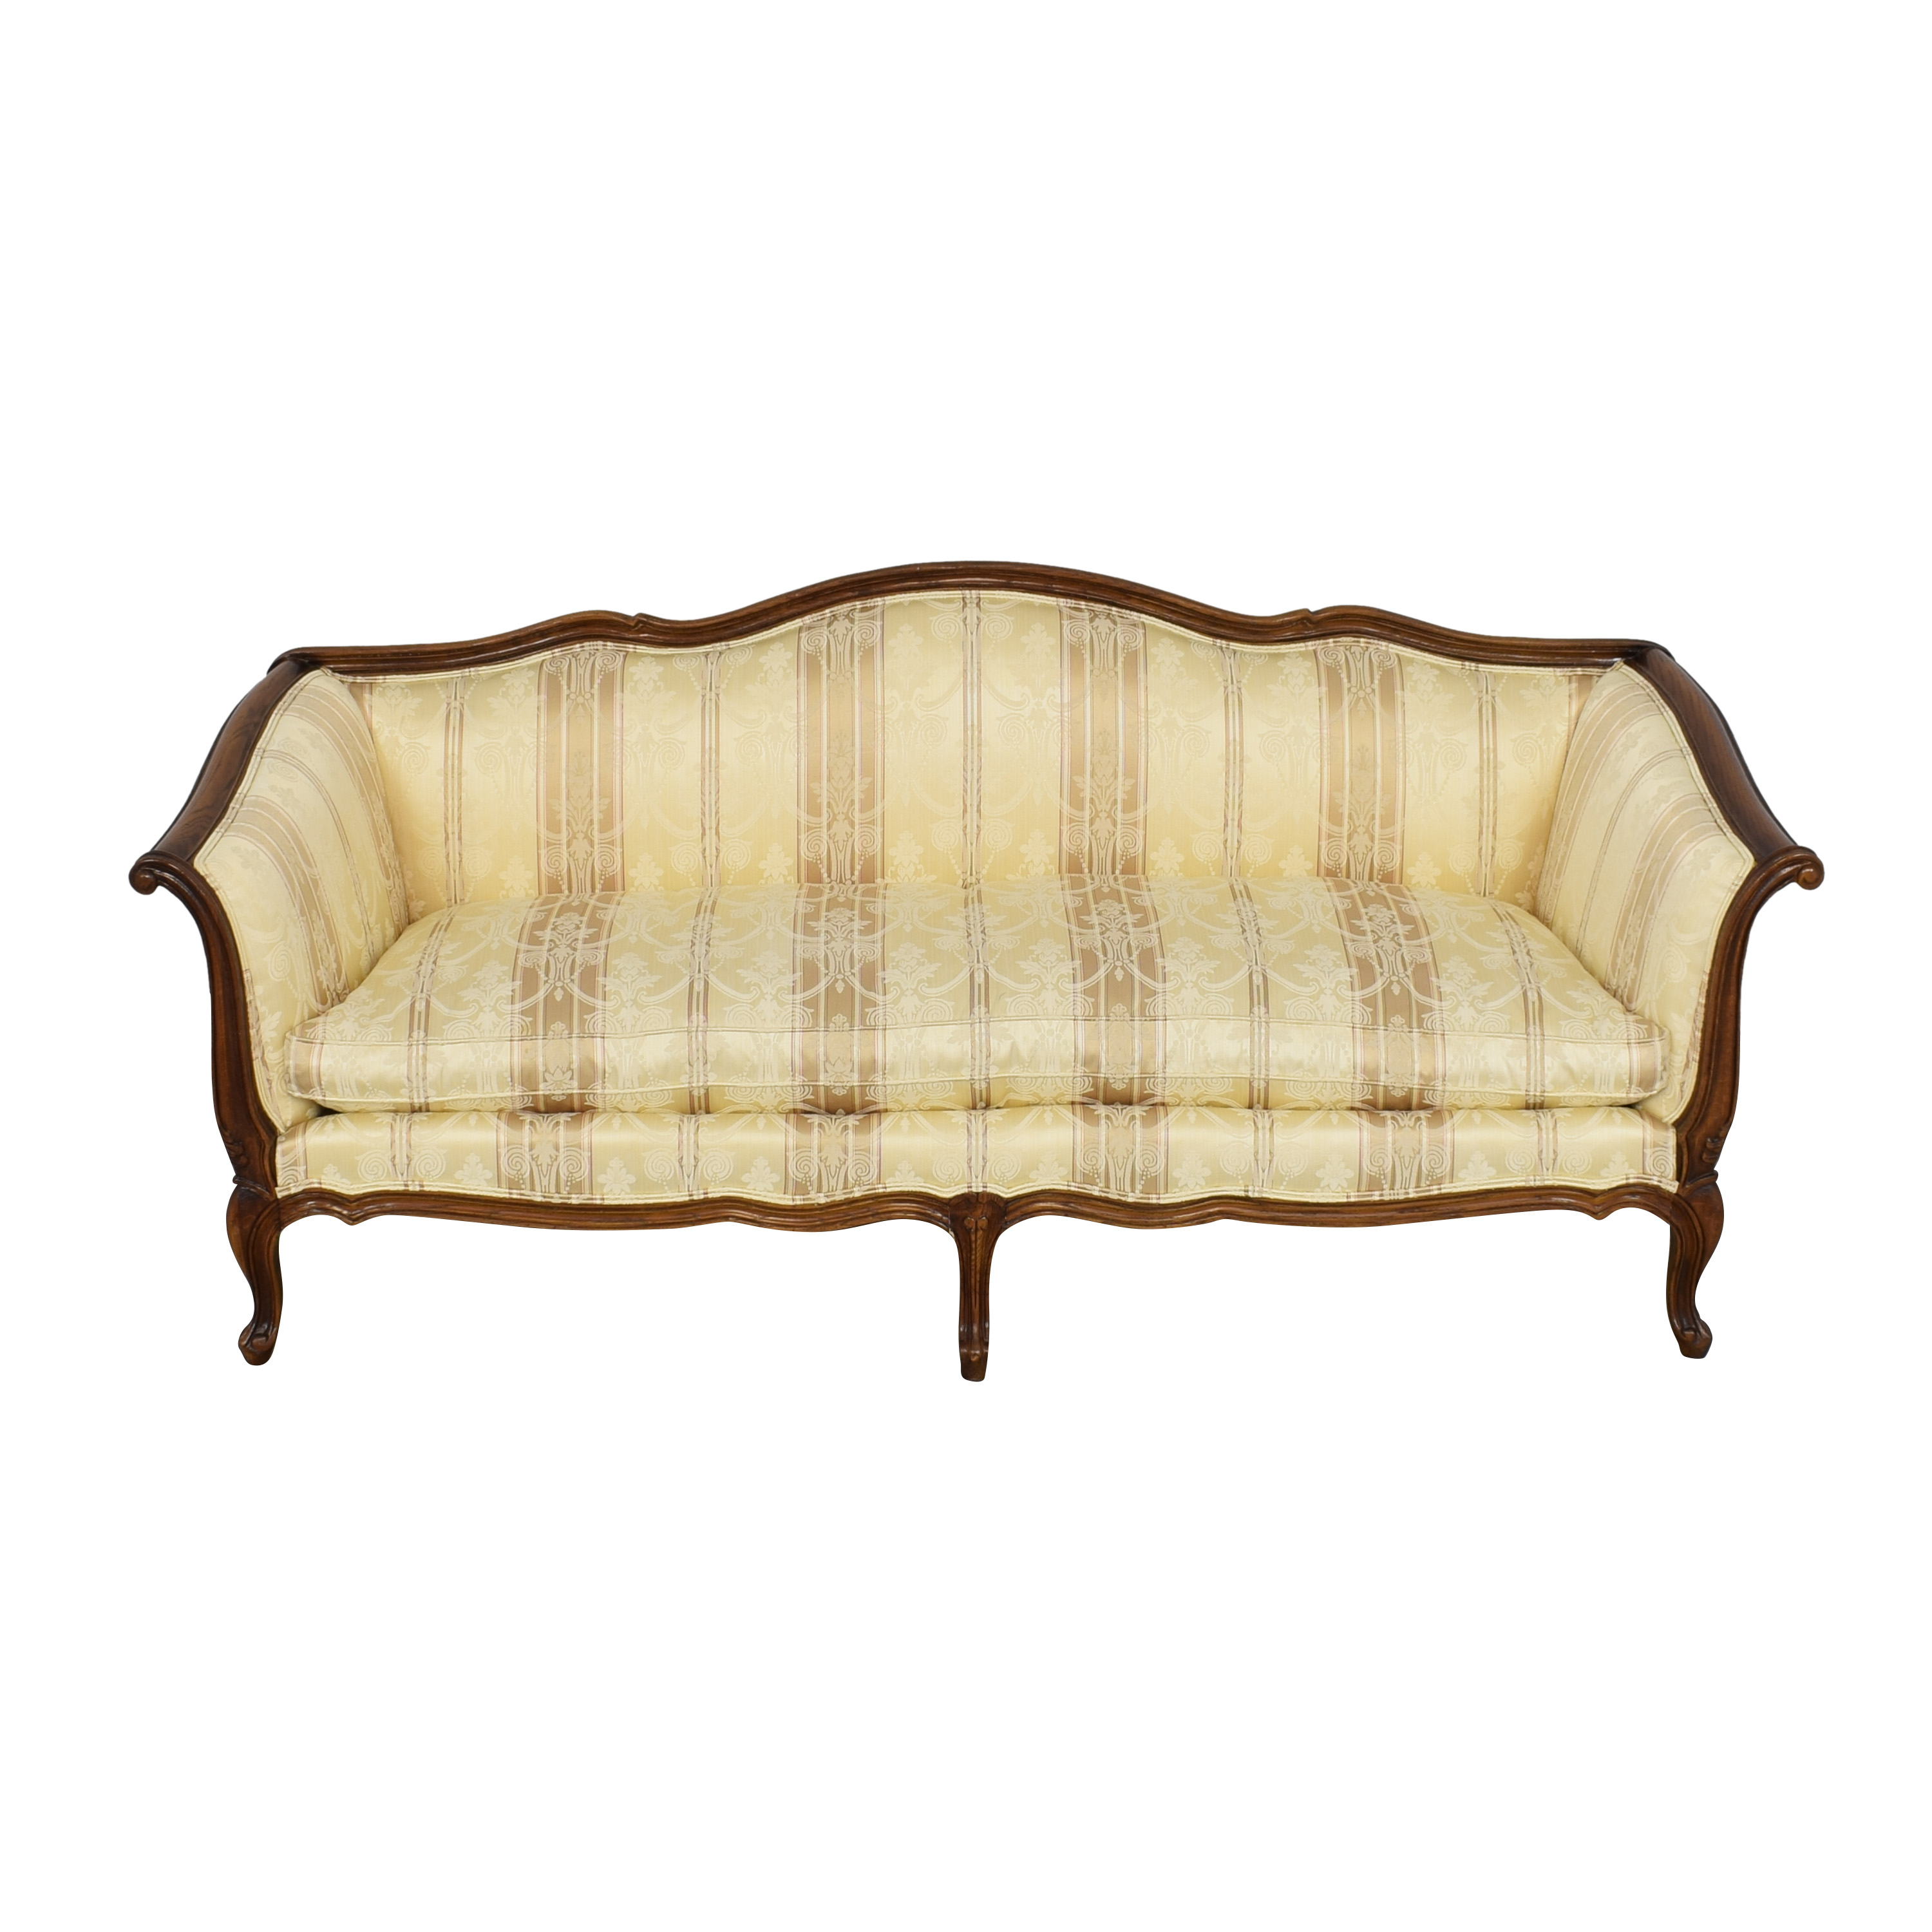 Century Furniture Century Furniture Sofa with Carved Legs and Trim on sale